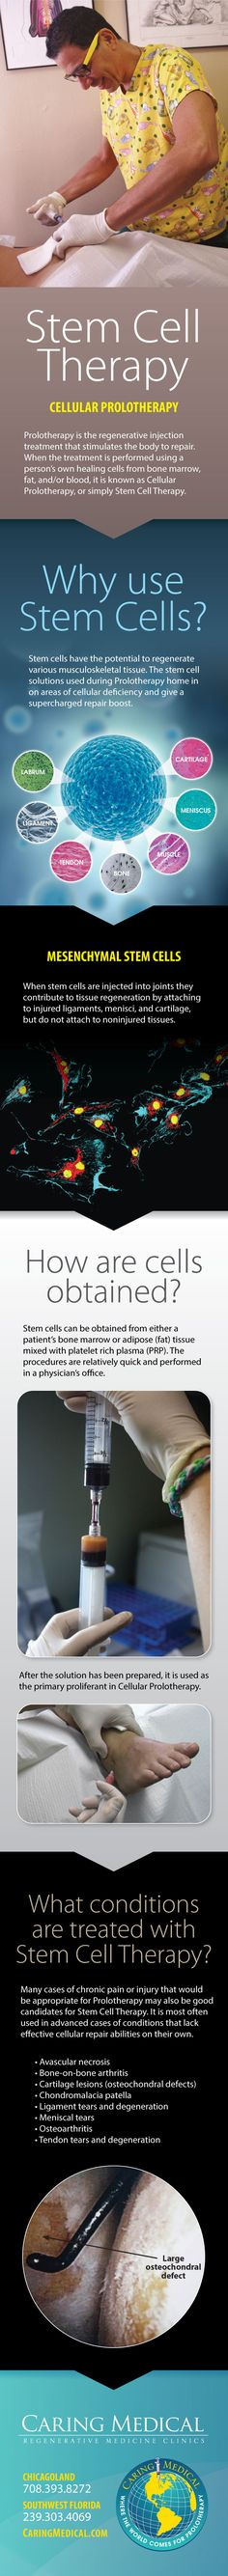 Stem cells have the potential to regenerate various muscloskeletal tissue. The stem cell solutions used during Prolotherapy hone in on areas of cellular deficiency and give a supercharged repair boost.